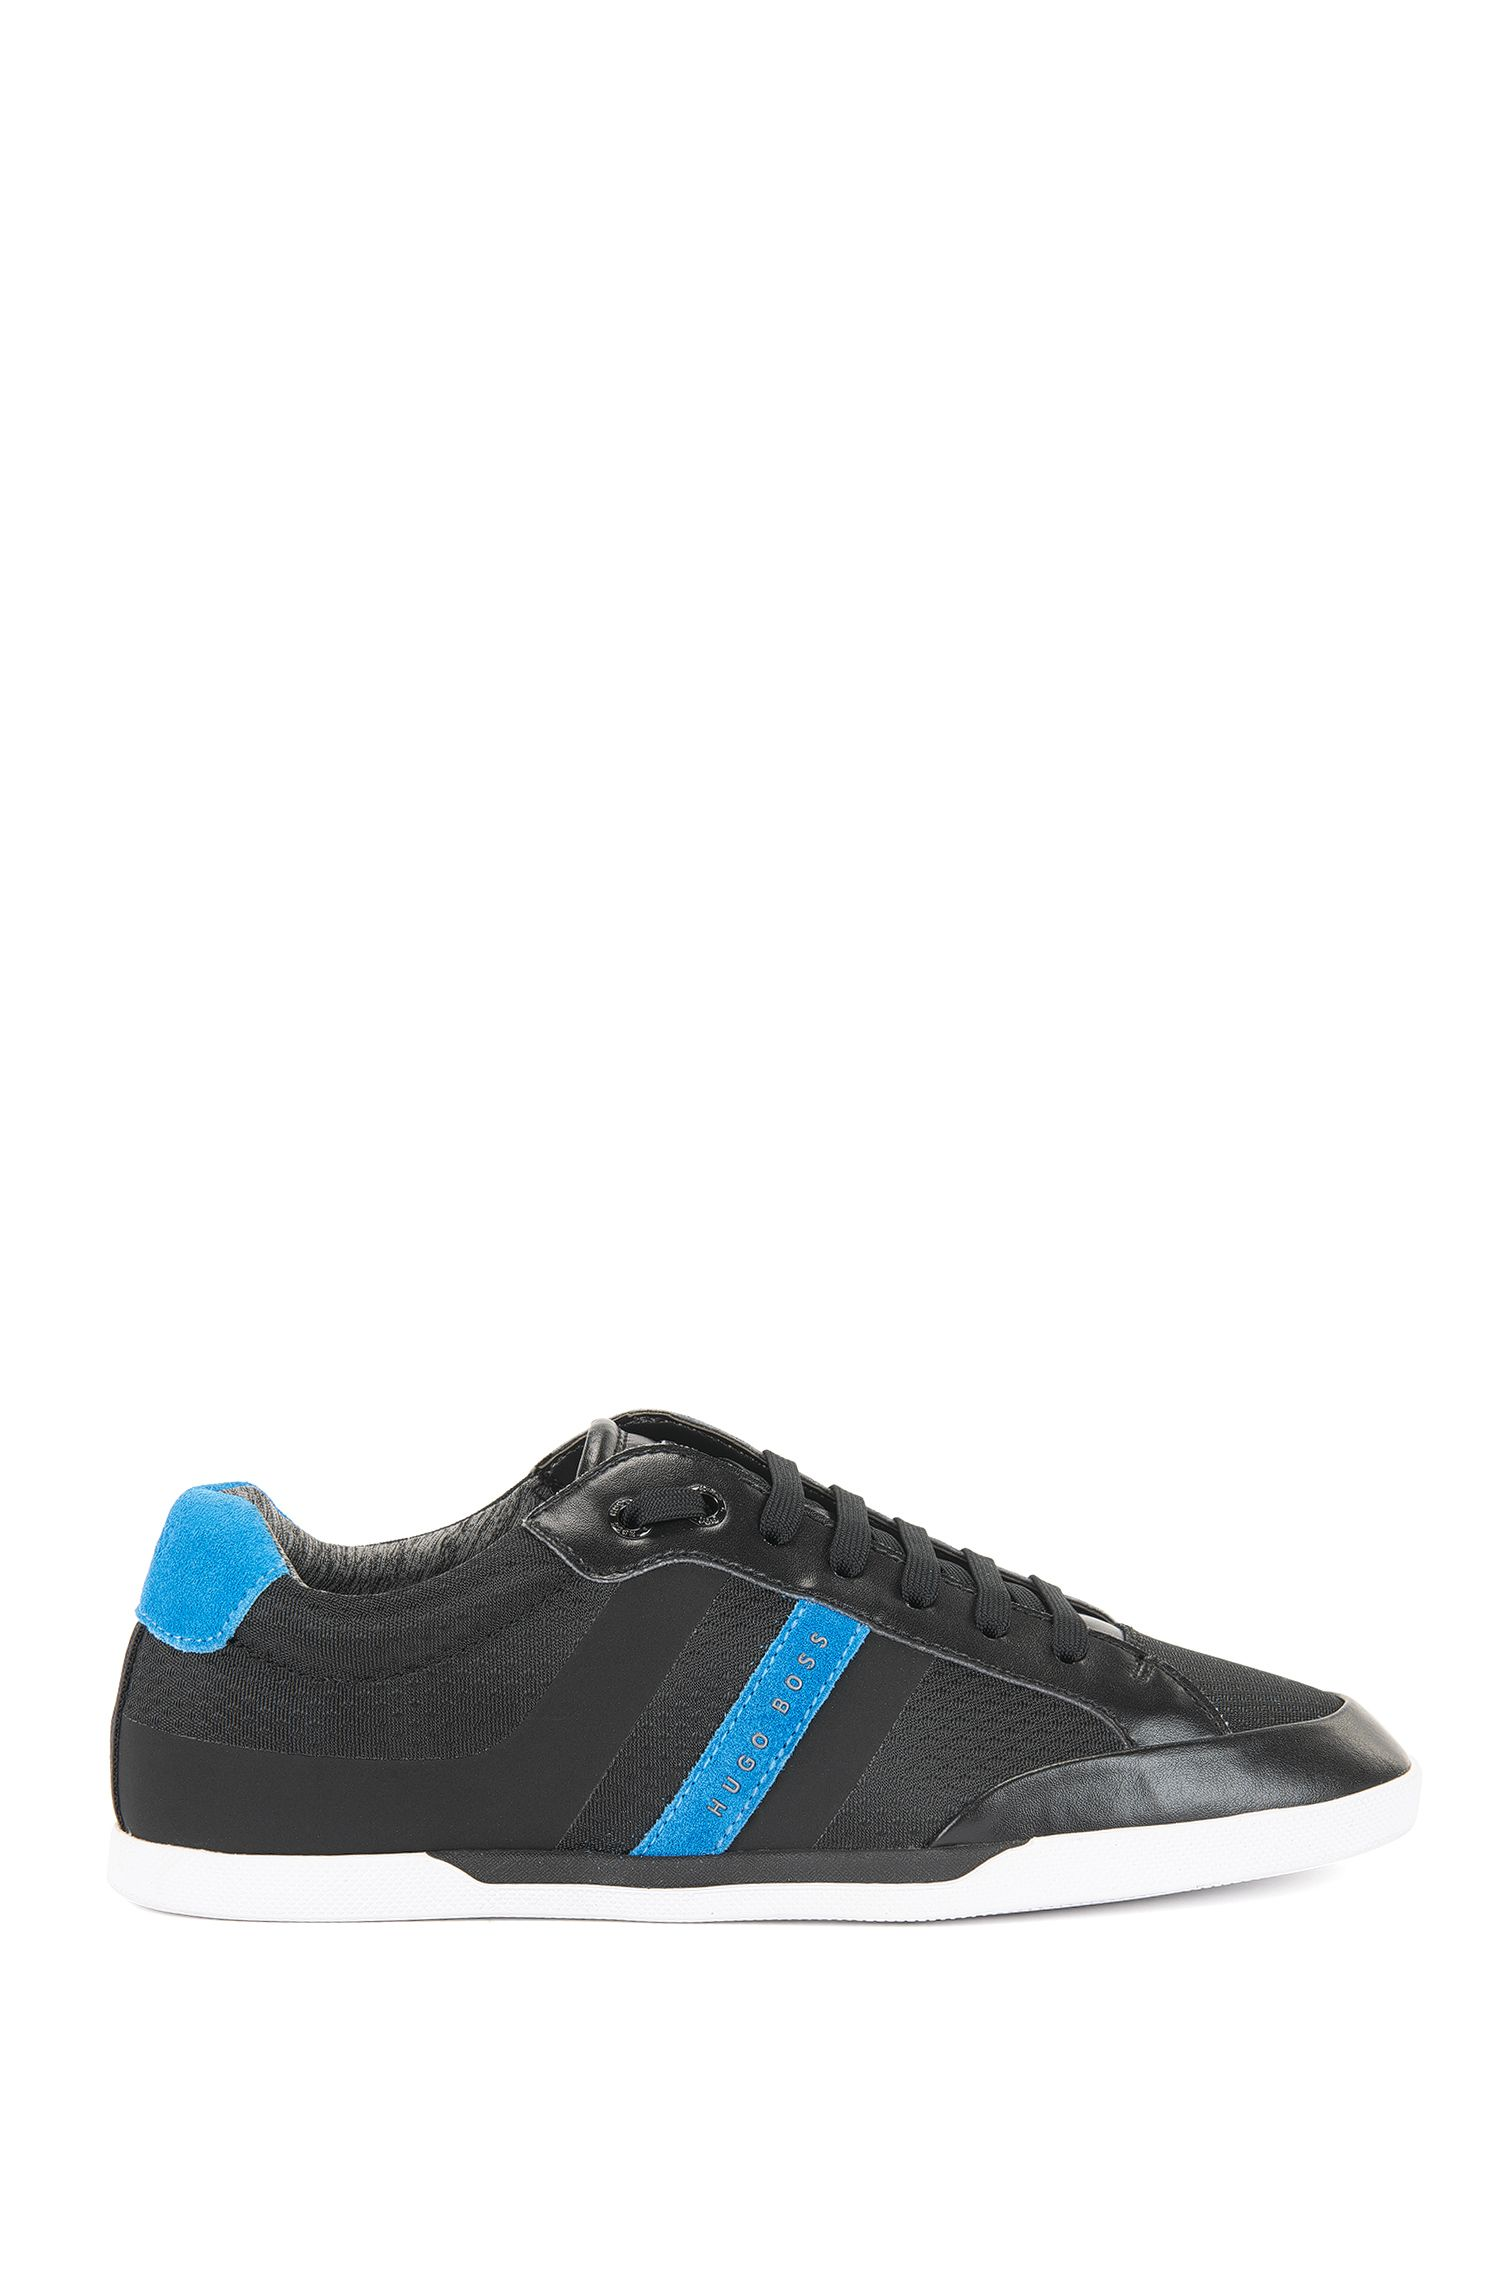 Tennis-style trainers with suede overlays